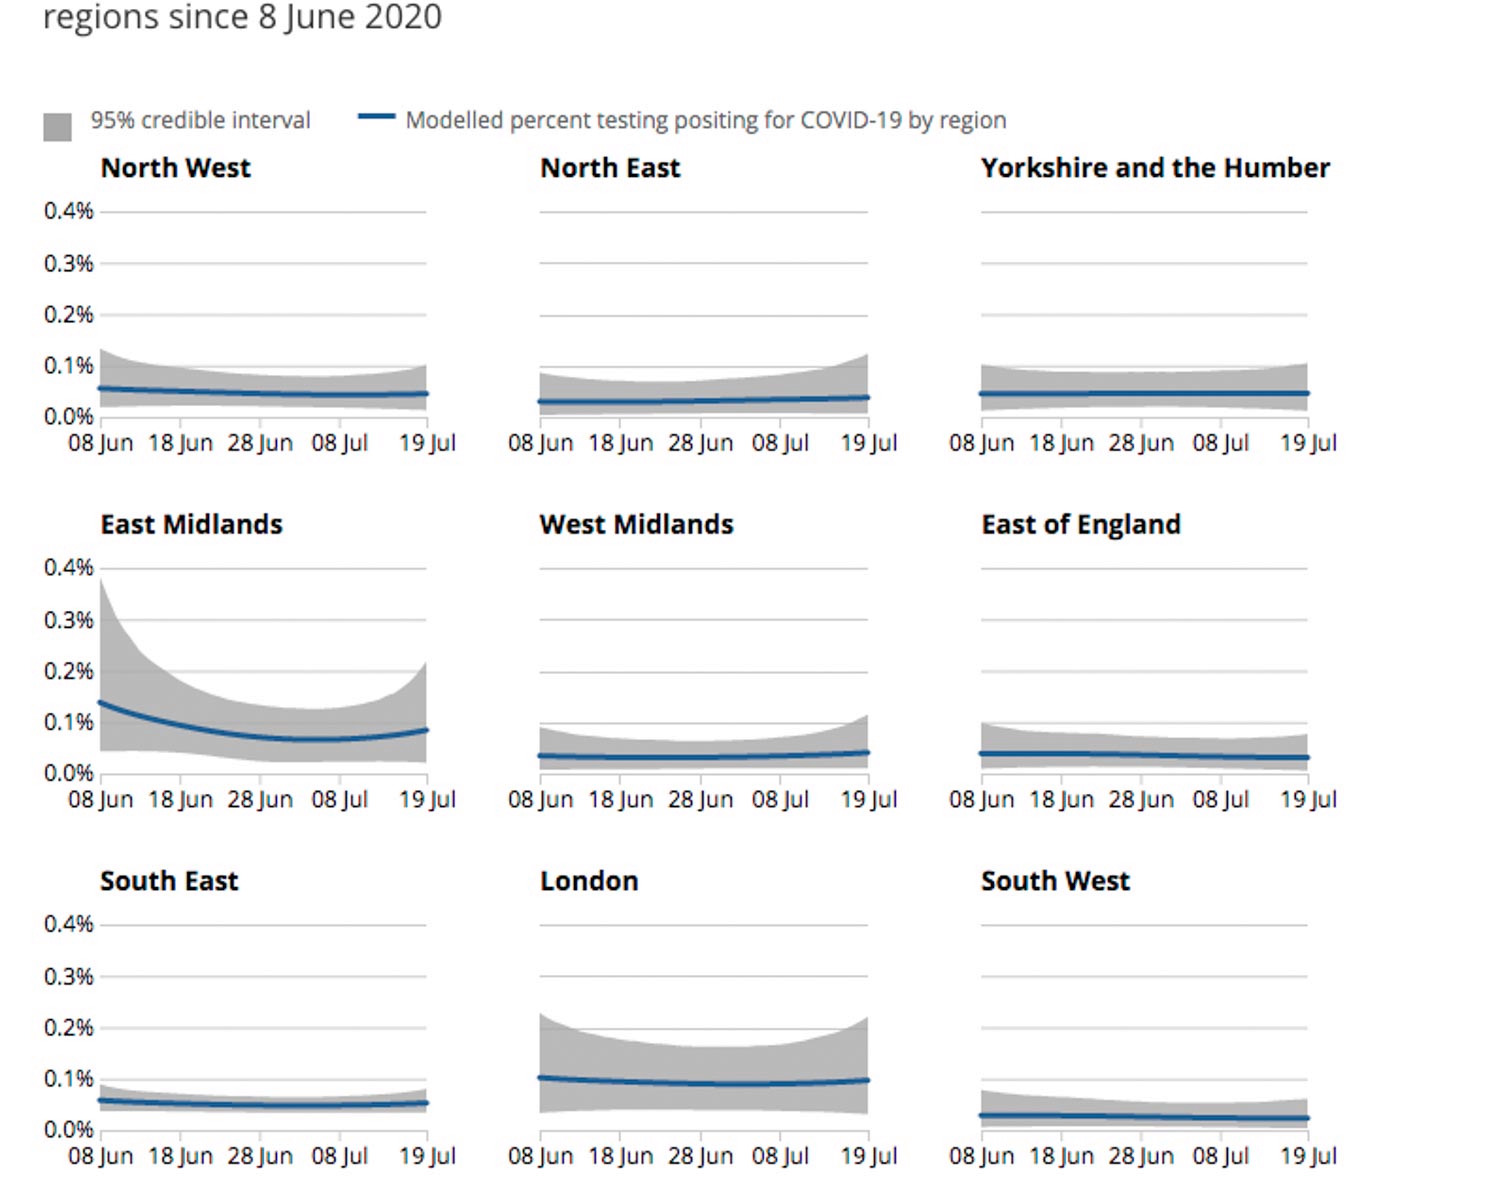 This ONS modelling shows that most regions appear level in recent weeks